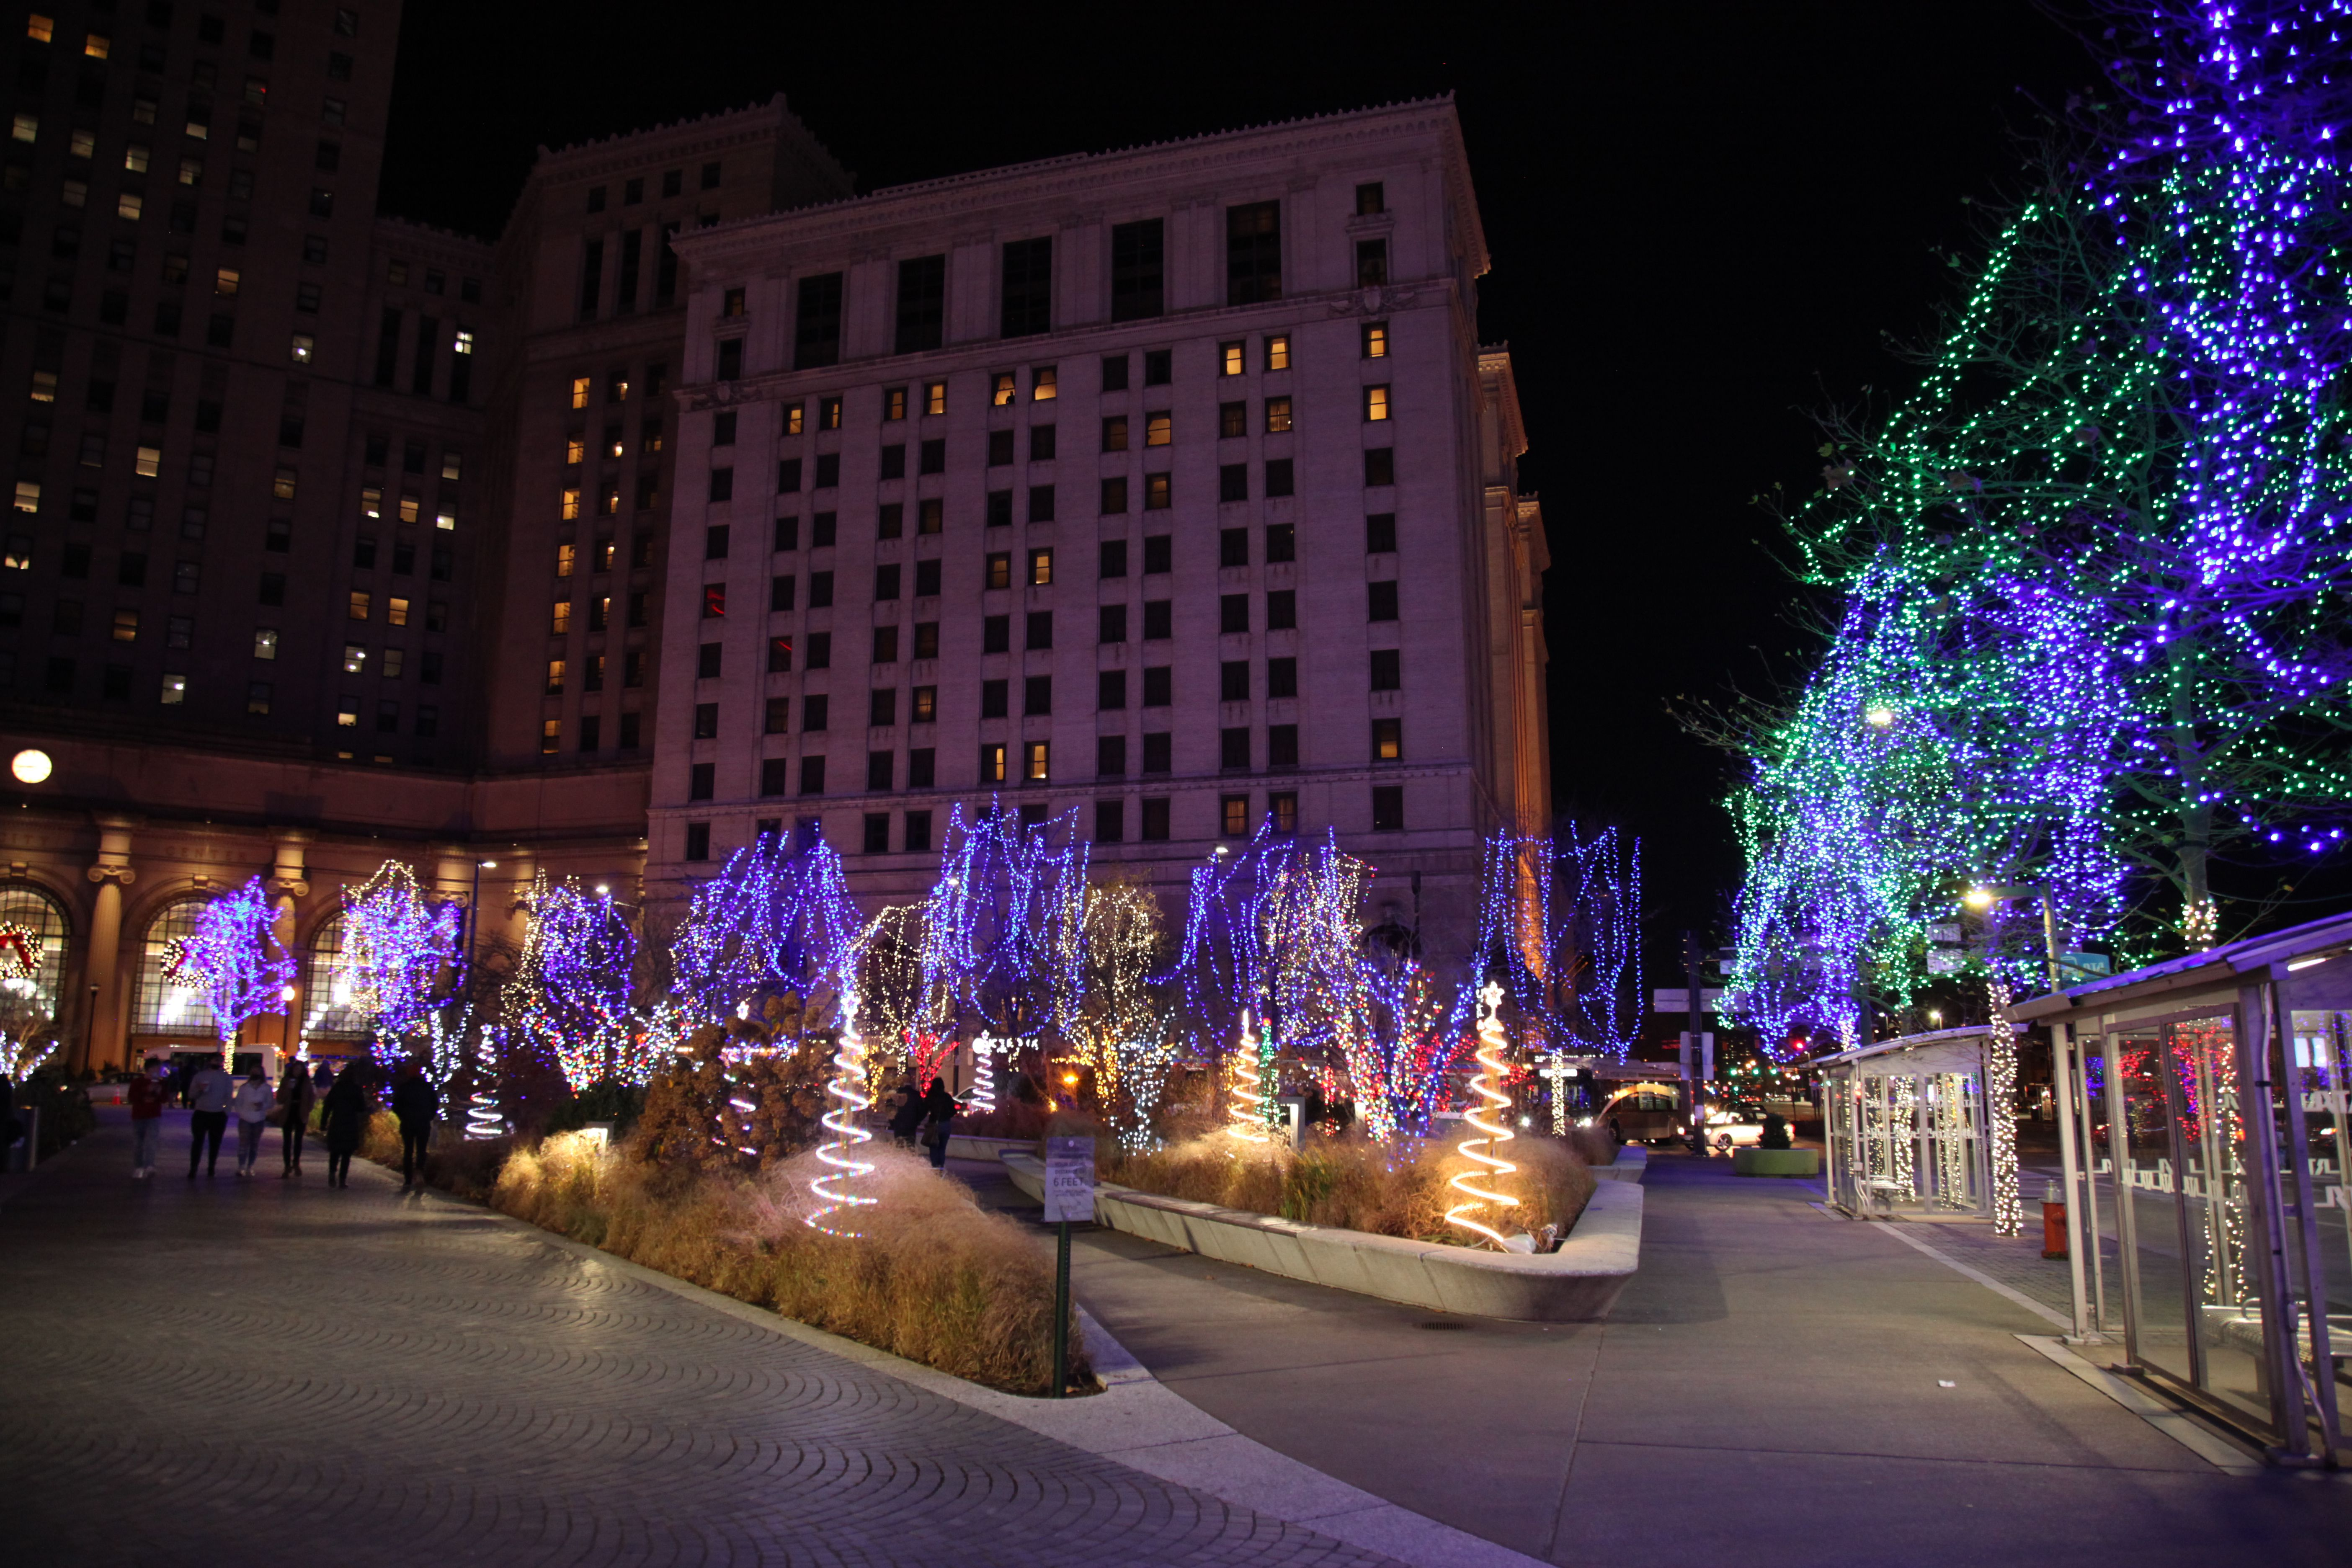 Cleveland Christmas Lighting 2021 Winterfest 2020 Tree Lighting A Welcome Sight At Cleveland S Public Square Photos Cleveland Com